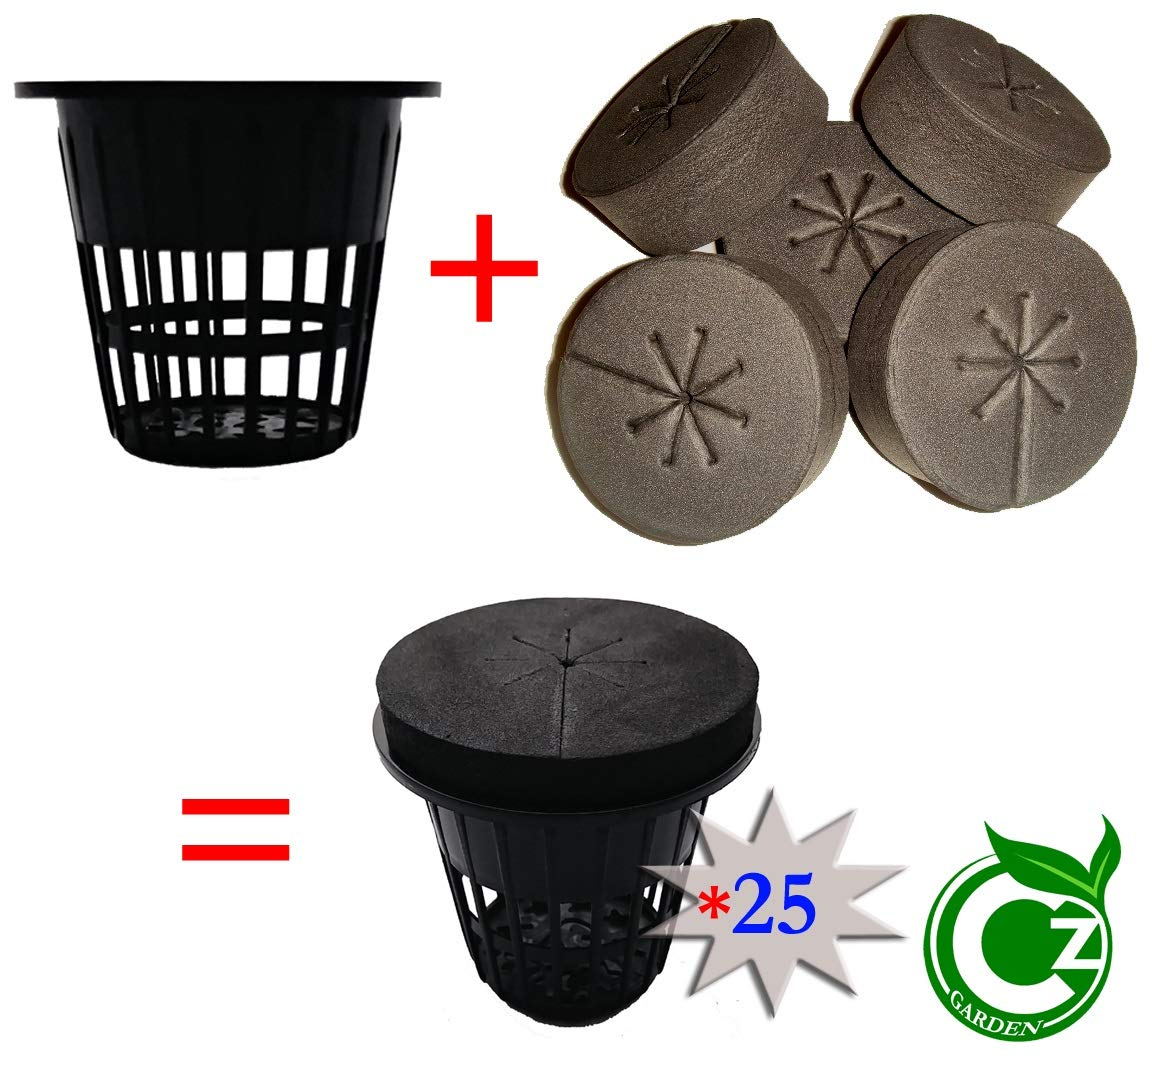 2 inch Net Cups Cloning Collar Inserts Combo 25 Pack for DIY Cloners 2 inch Black Pots Black Inserts